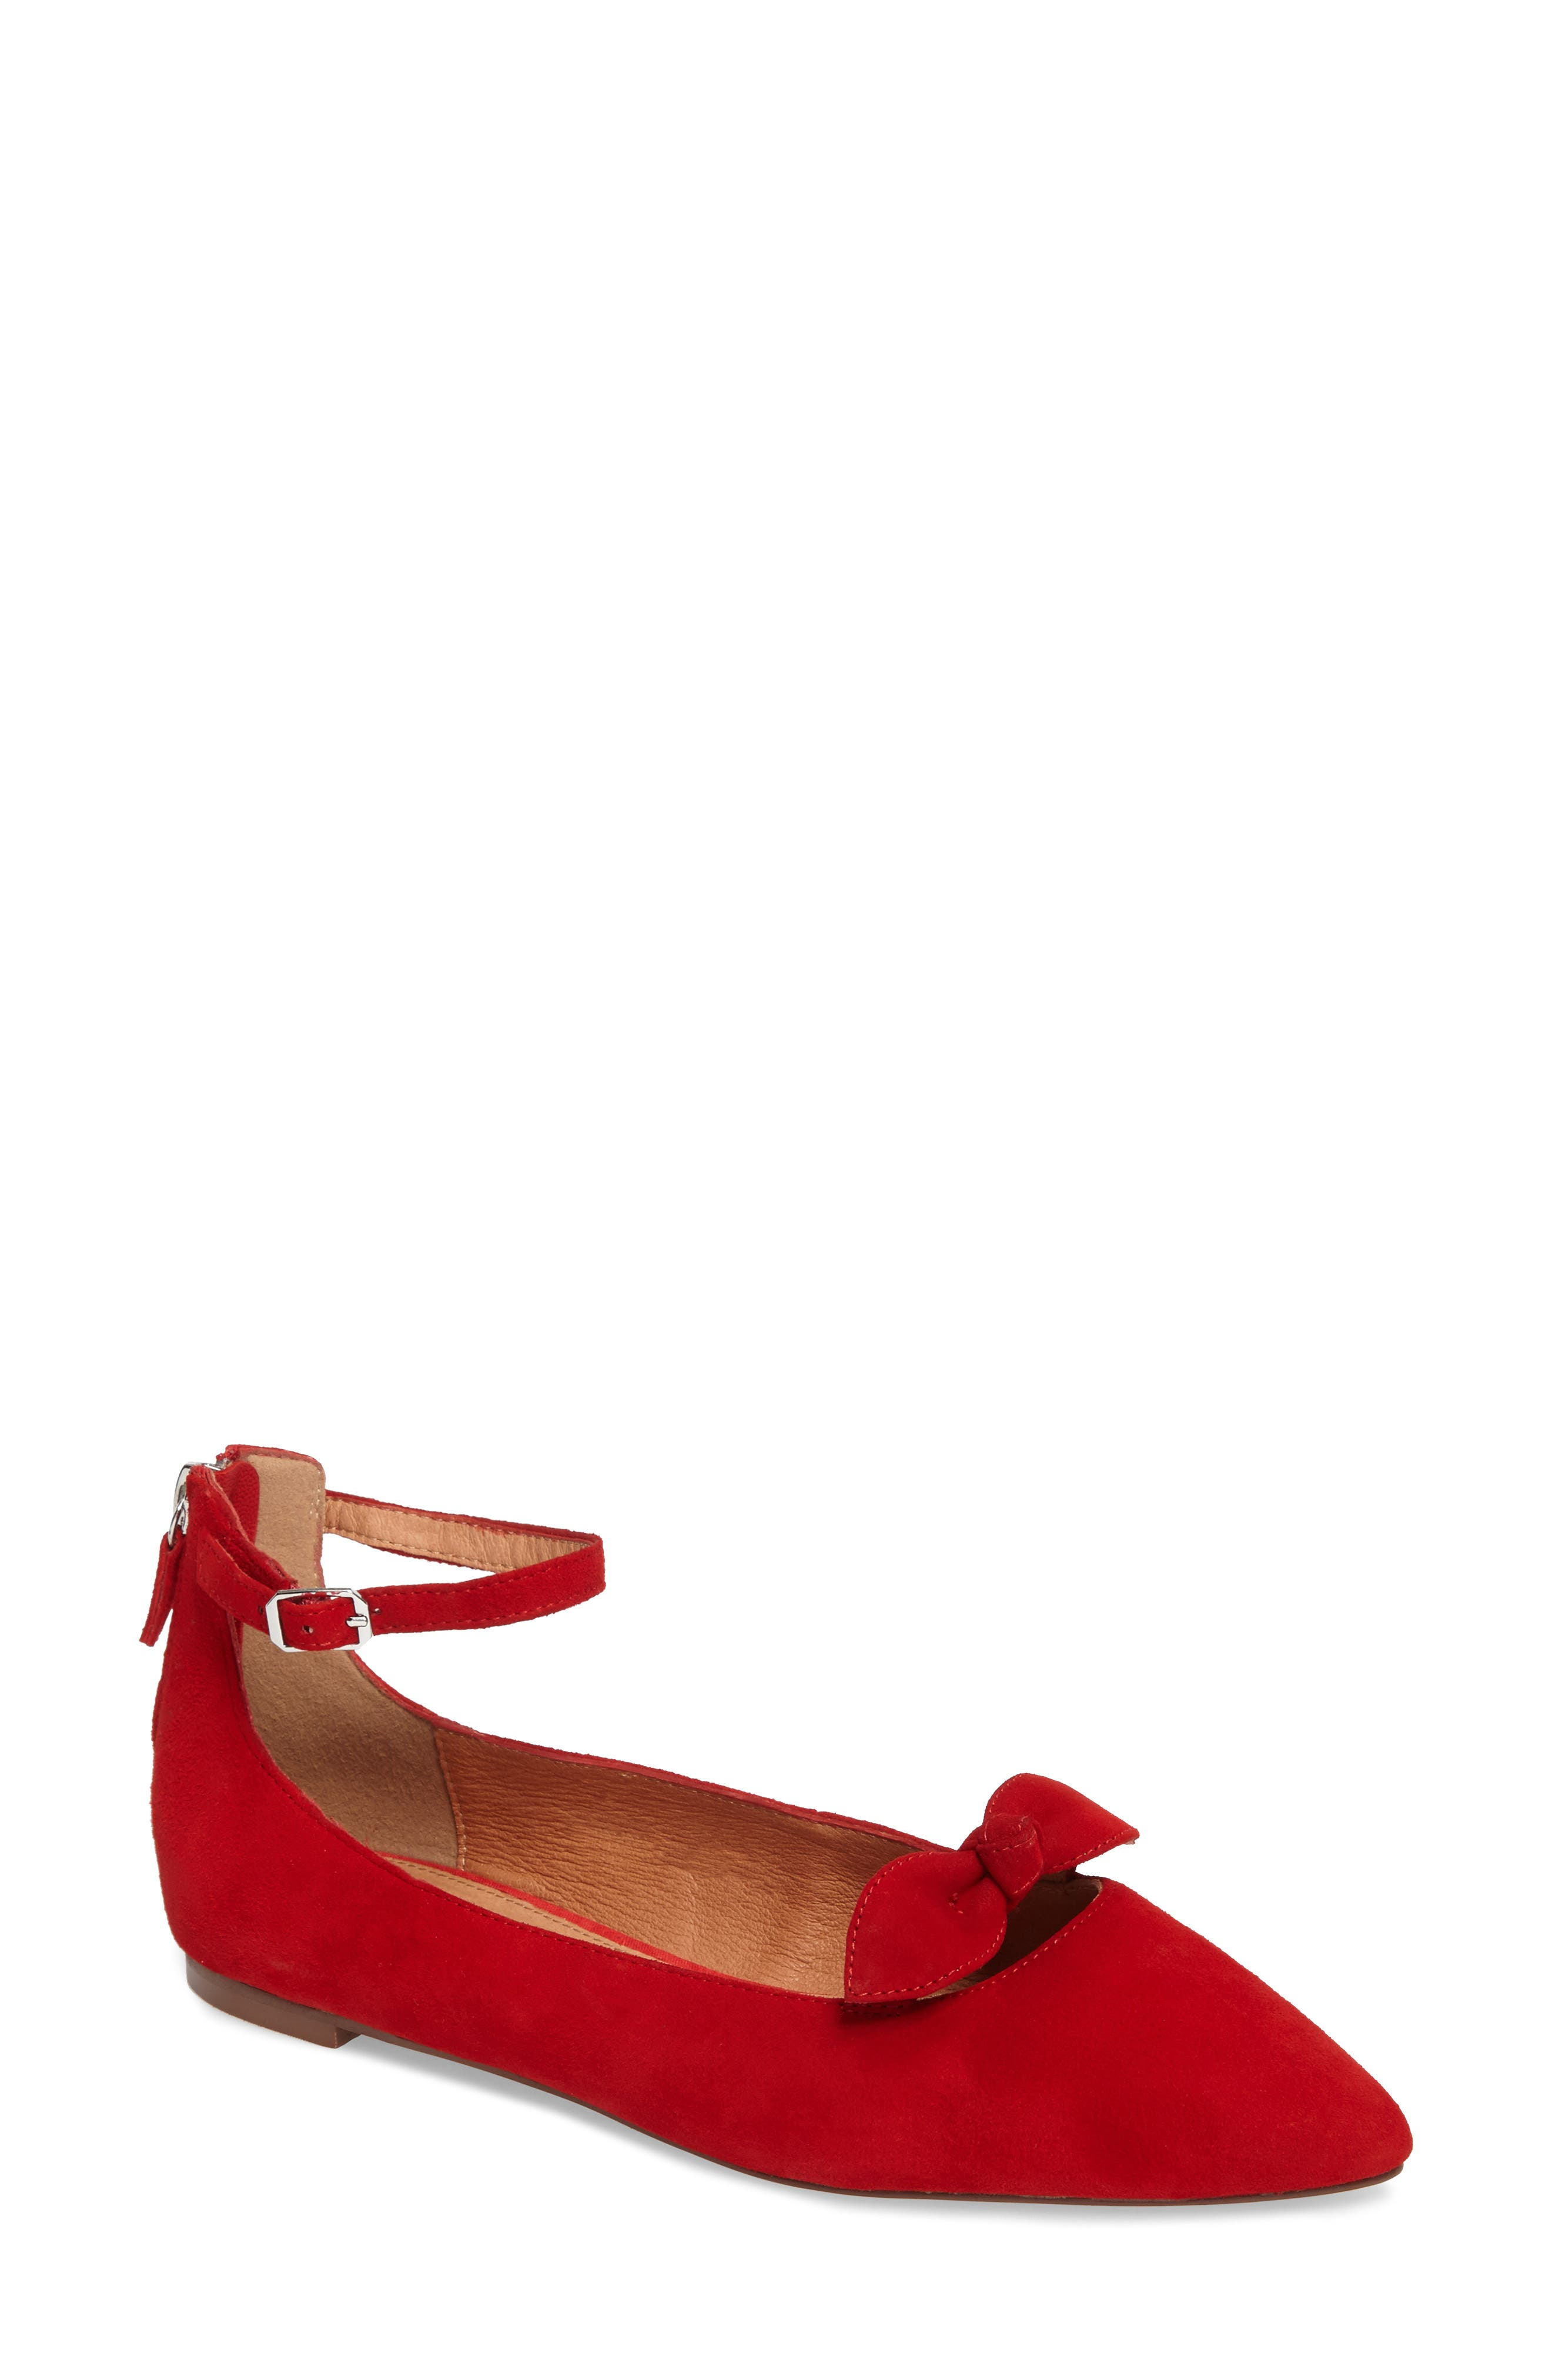 Paisley Ankle Strap Flat,                         Main,                         color, Red Suede